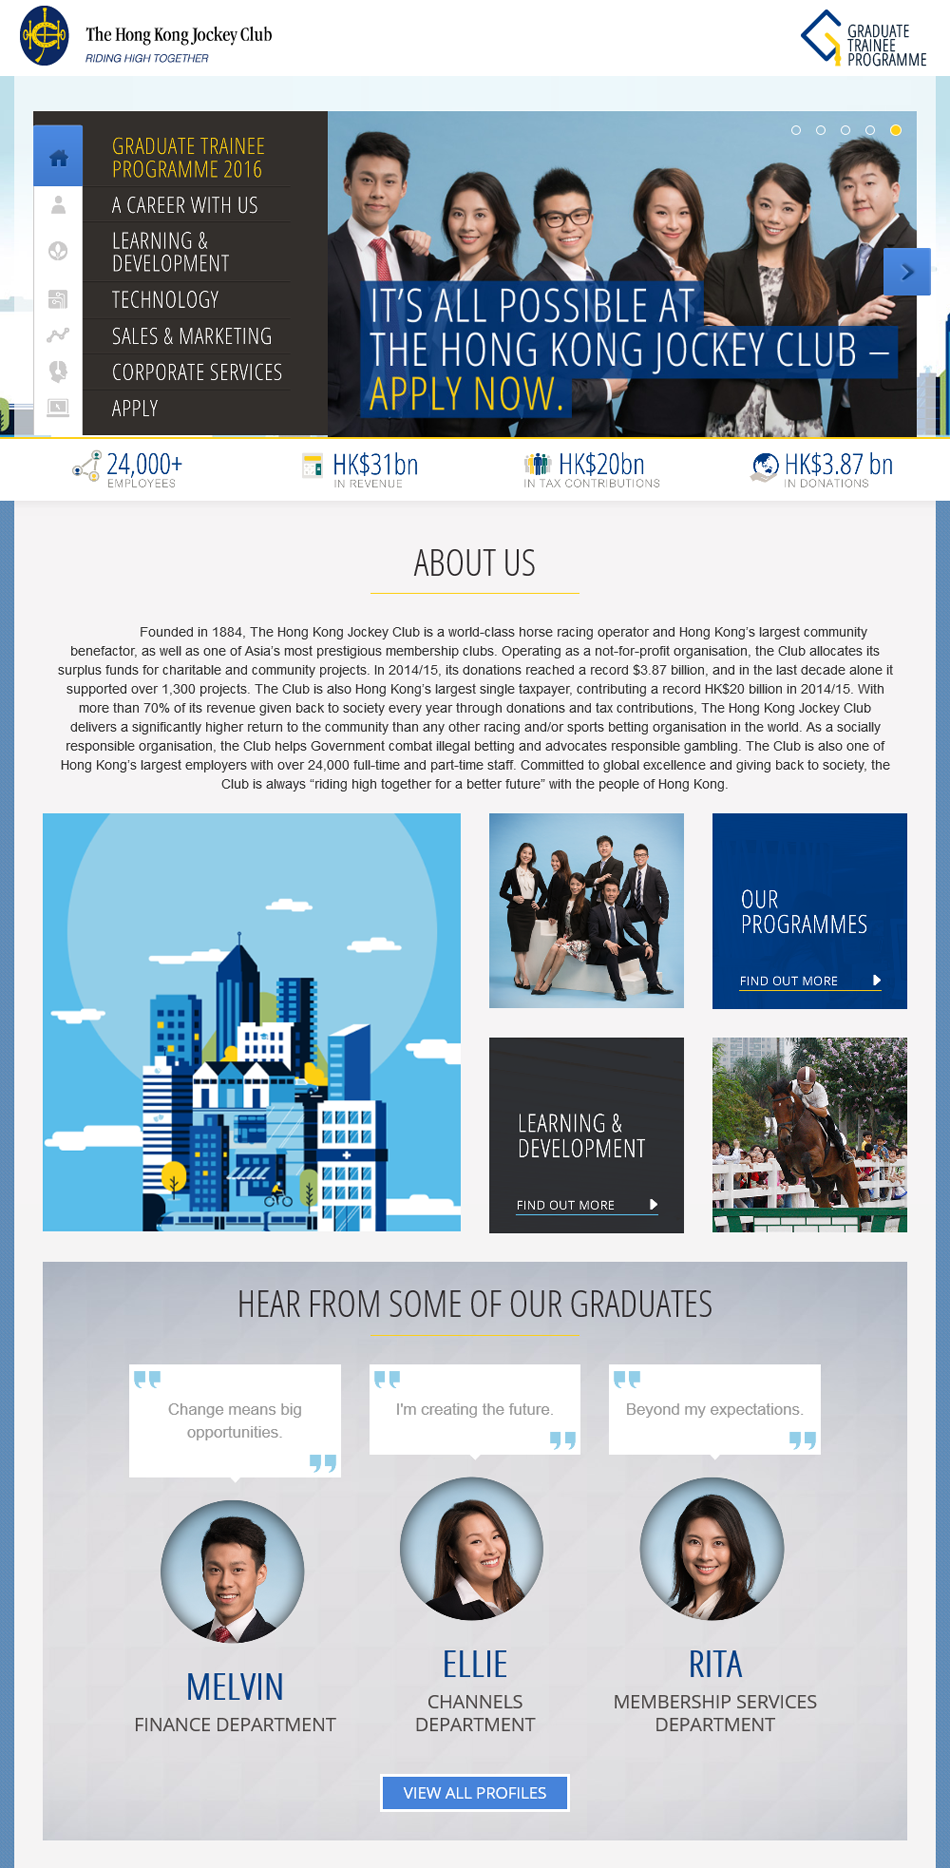 It's all possible at the Hong Kong Jockey Club - Apply Now